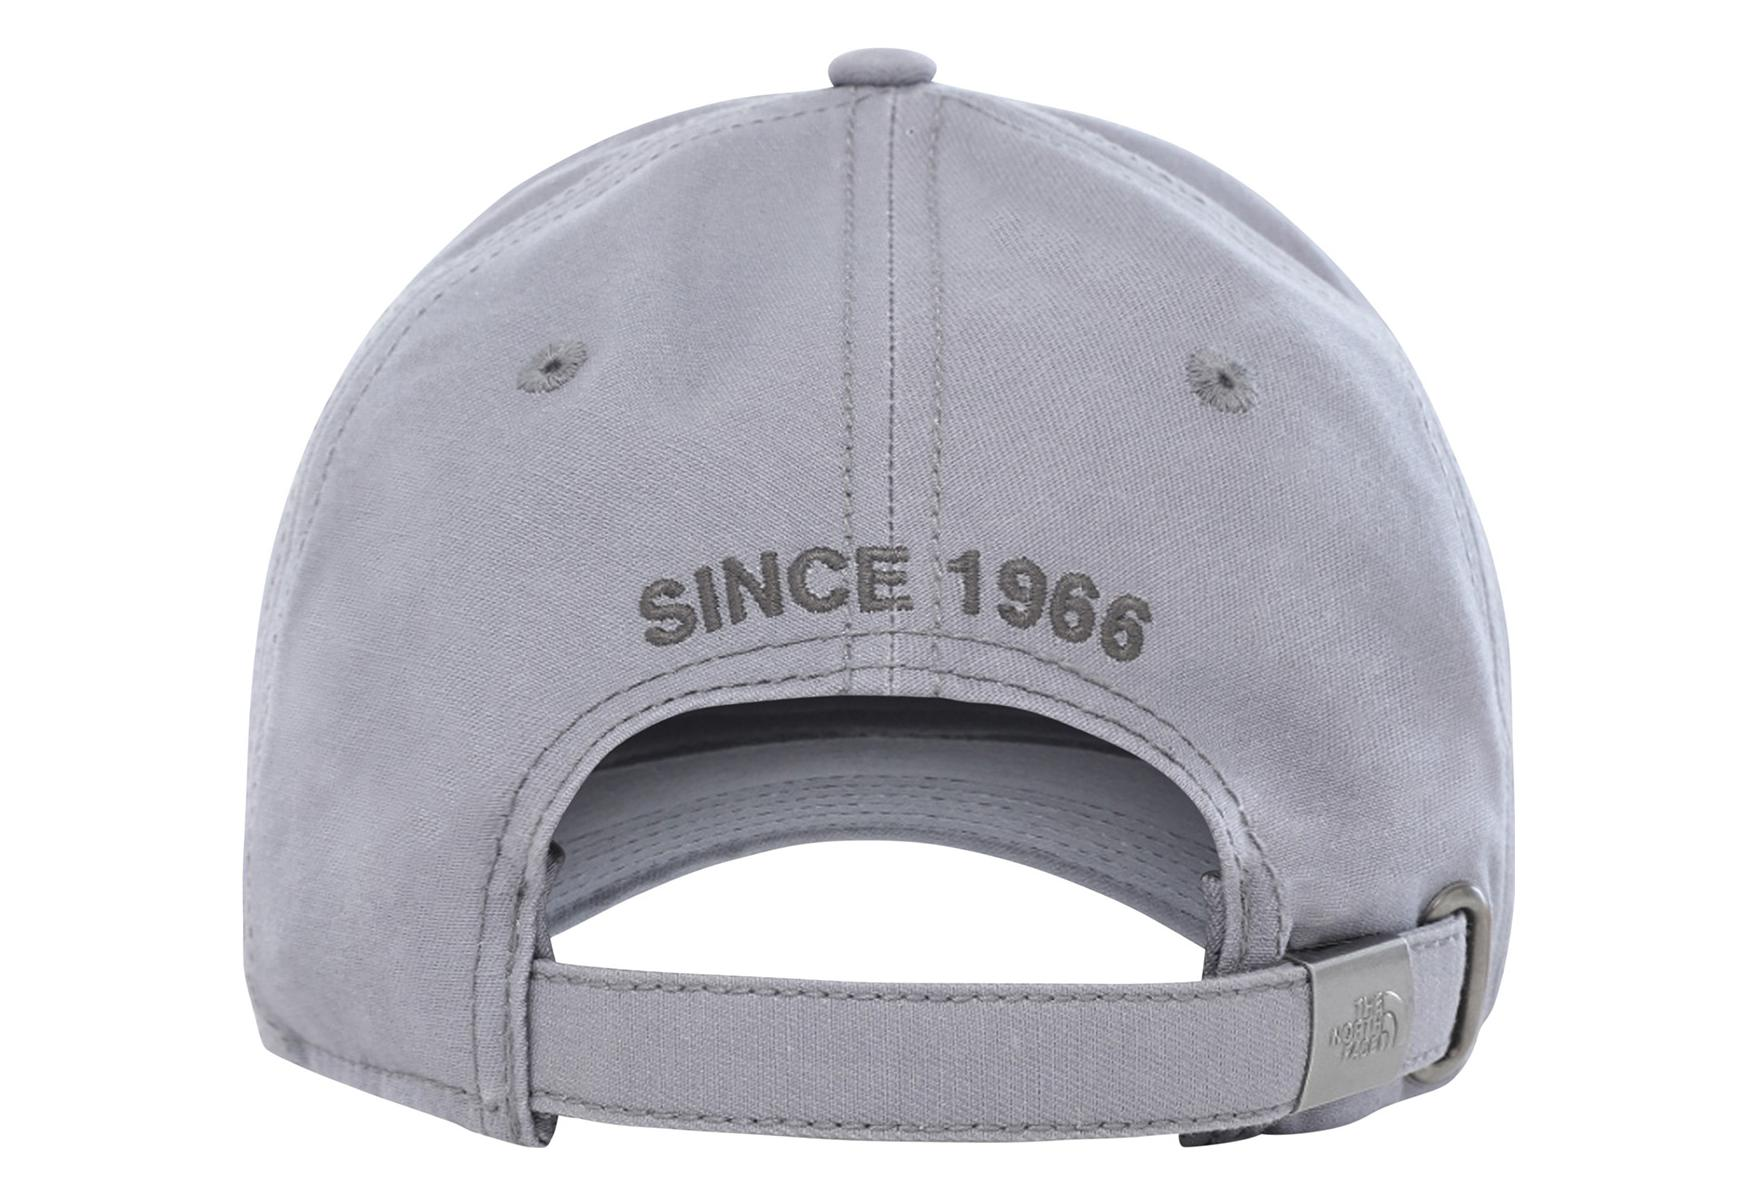 The North Face Unisex 66 Classic Hat